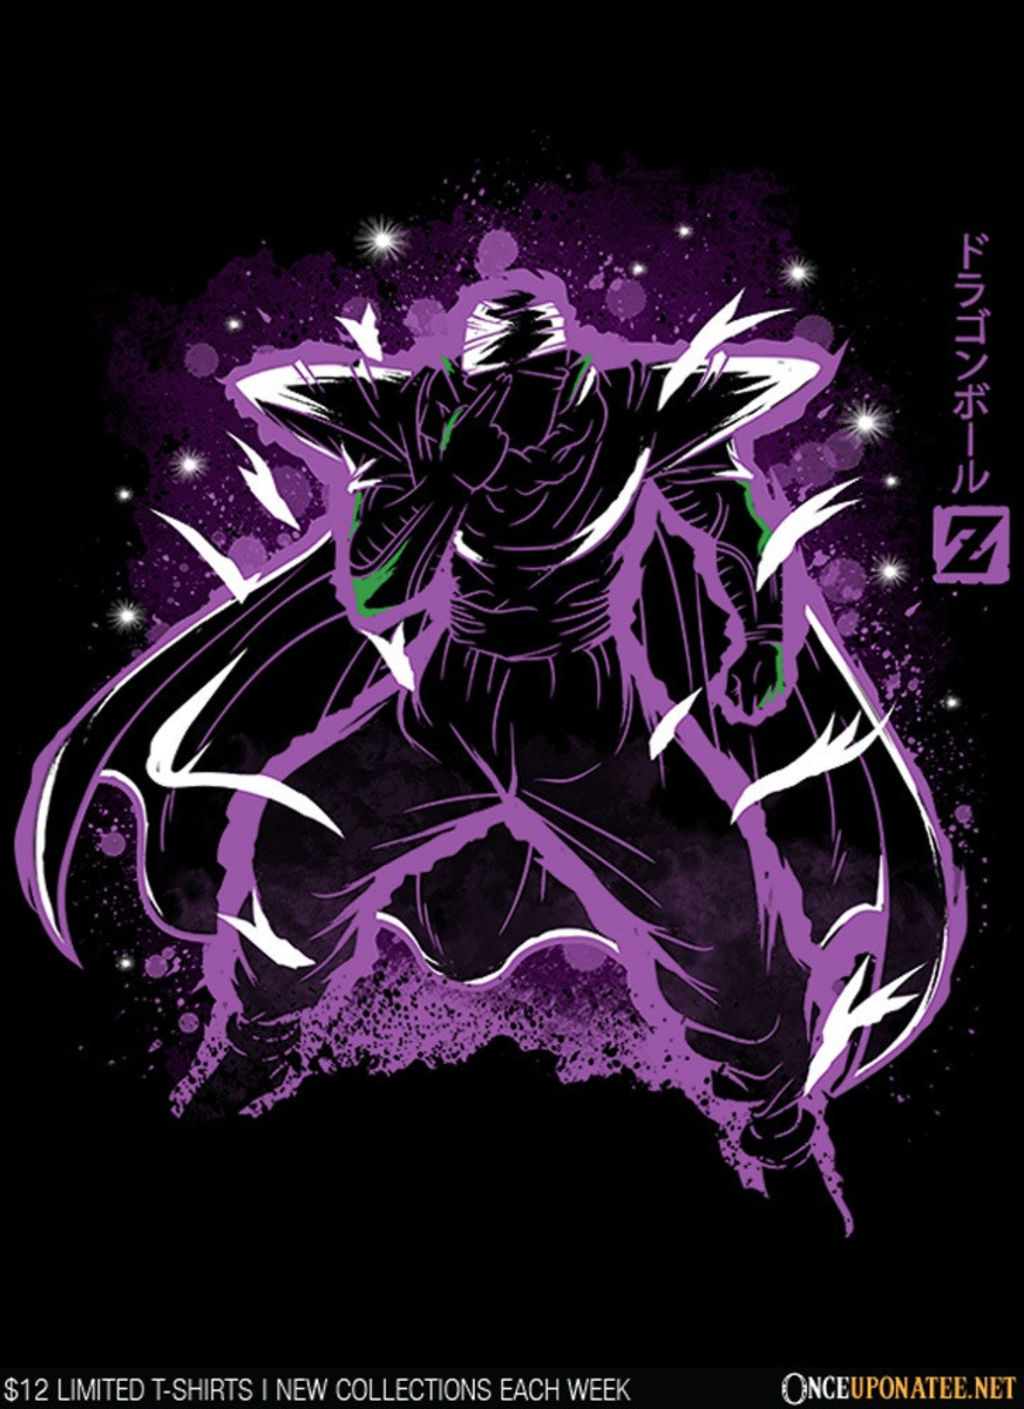 Once Upon a Tee: The Namek